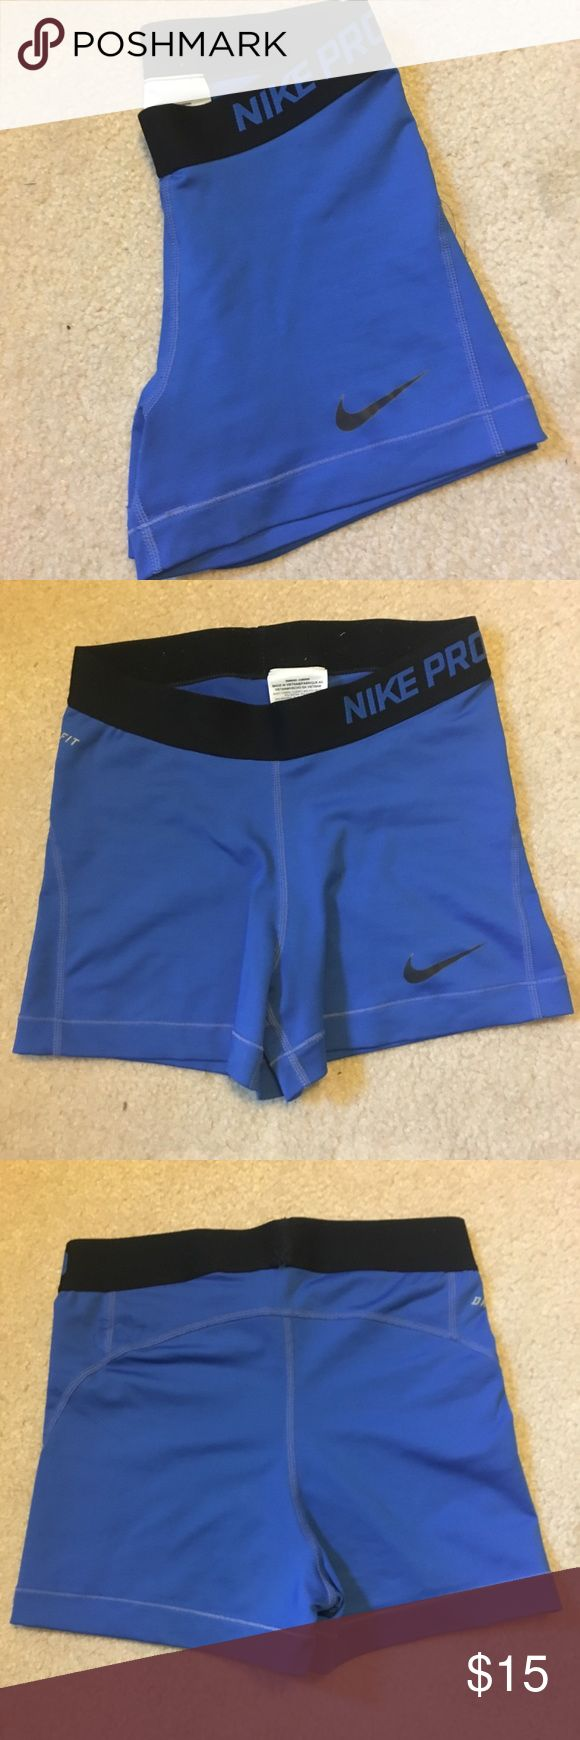 "Nike Pro Women's 3"" training shorts Women's blue nike pro spandex, used but in great condition (no holes or pilling) size small Nike Other"